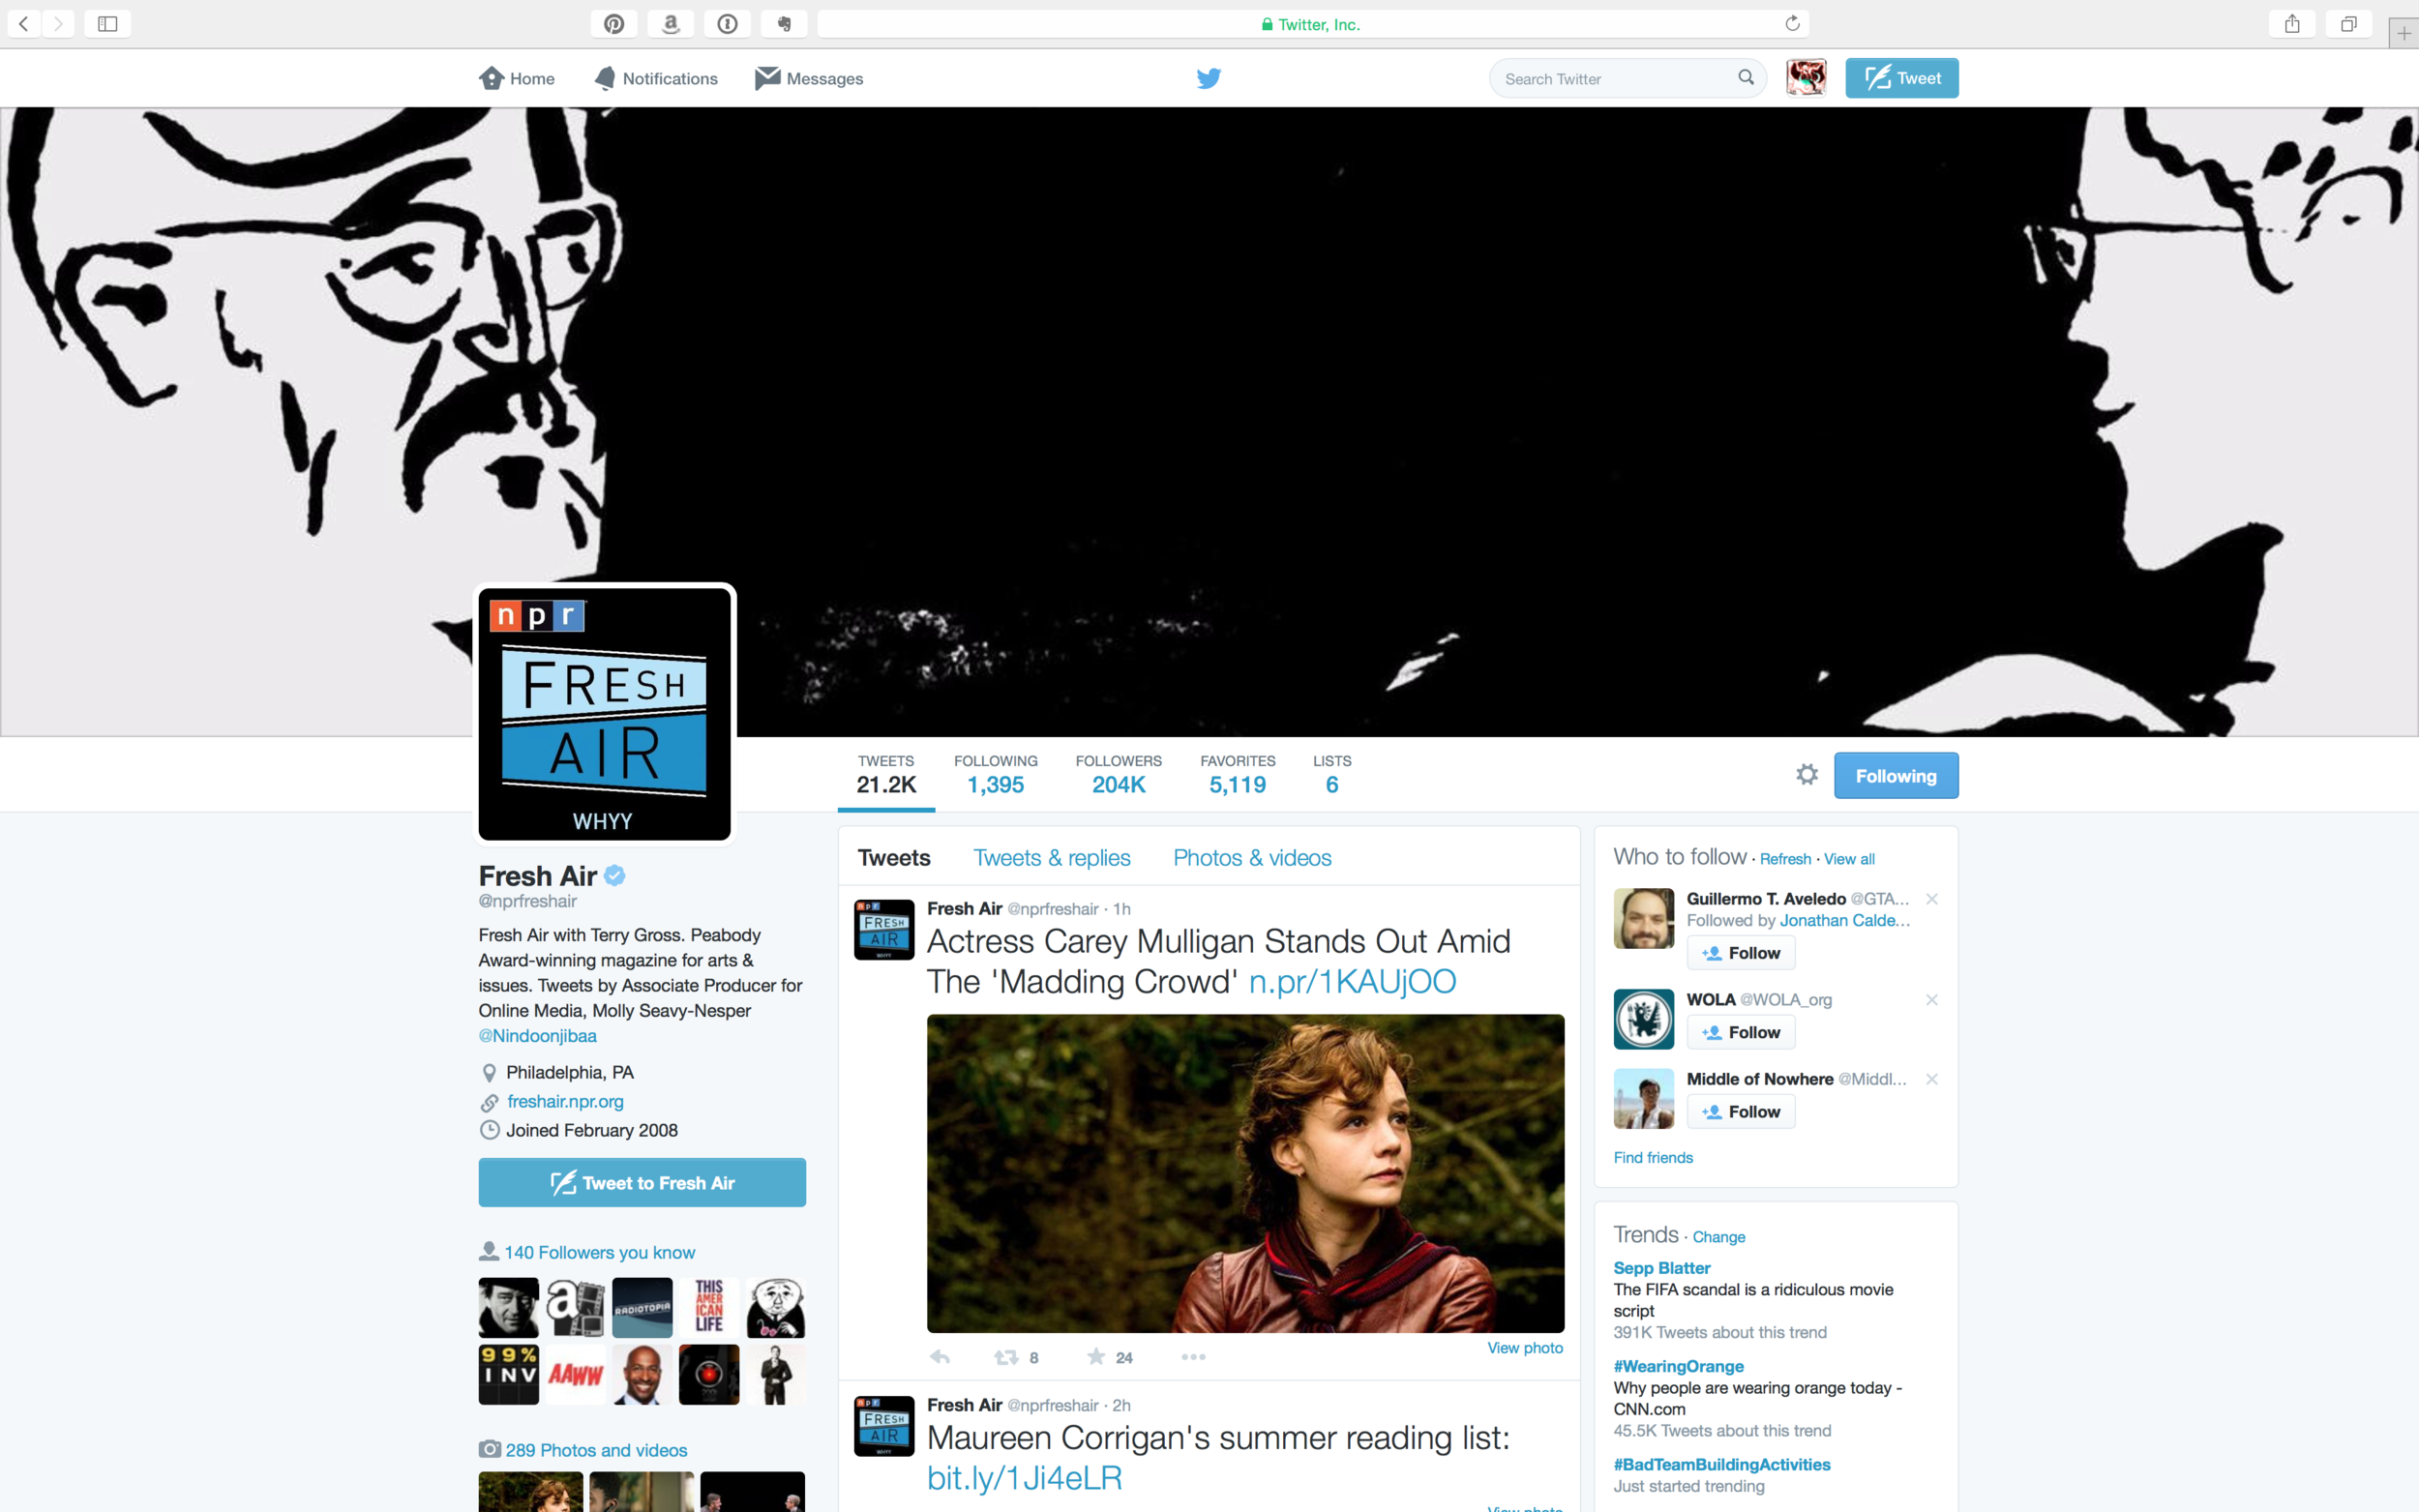 Fresh Air with Terry Gross Twitter Page